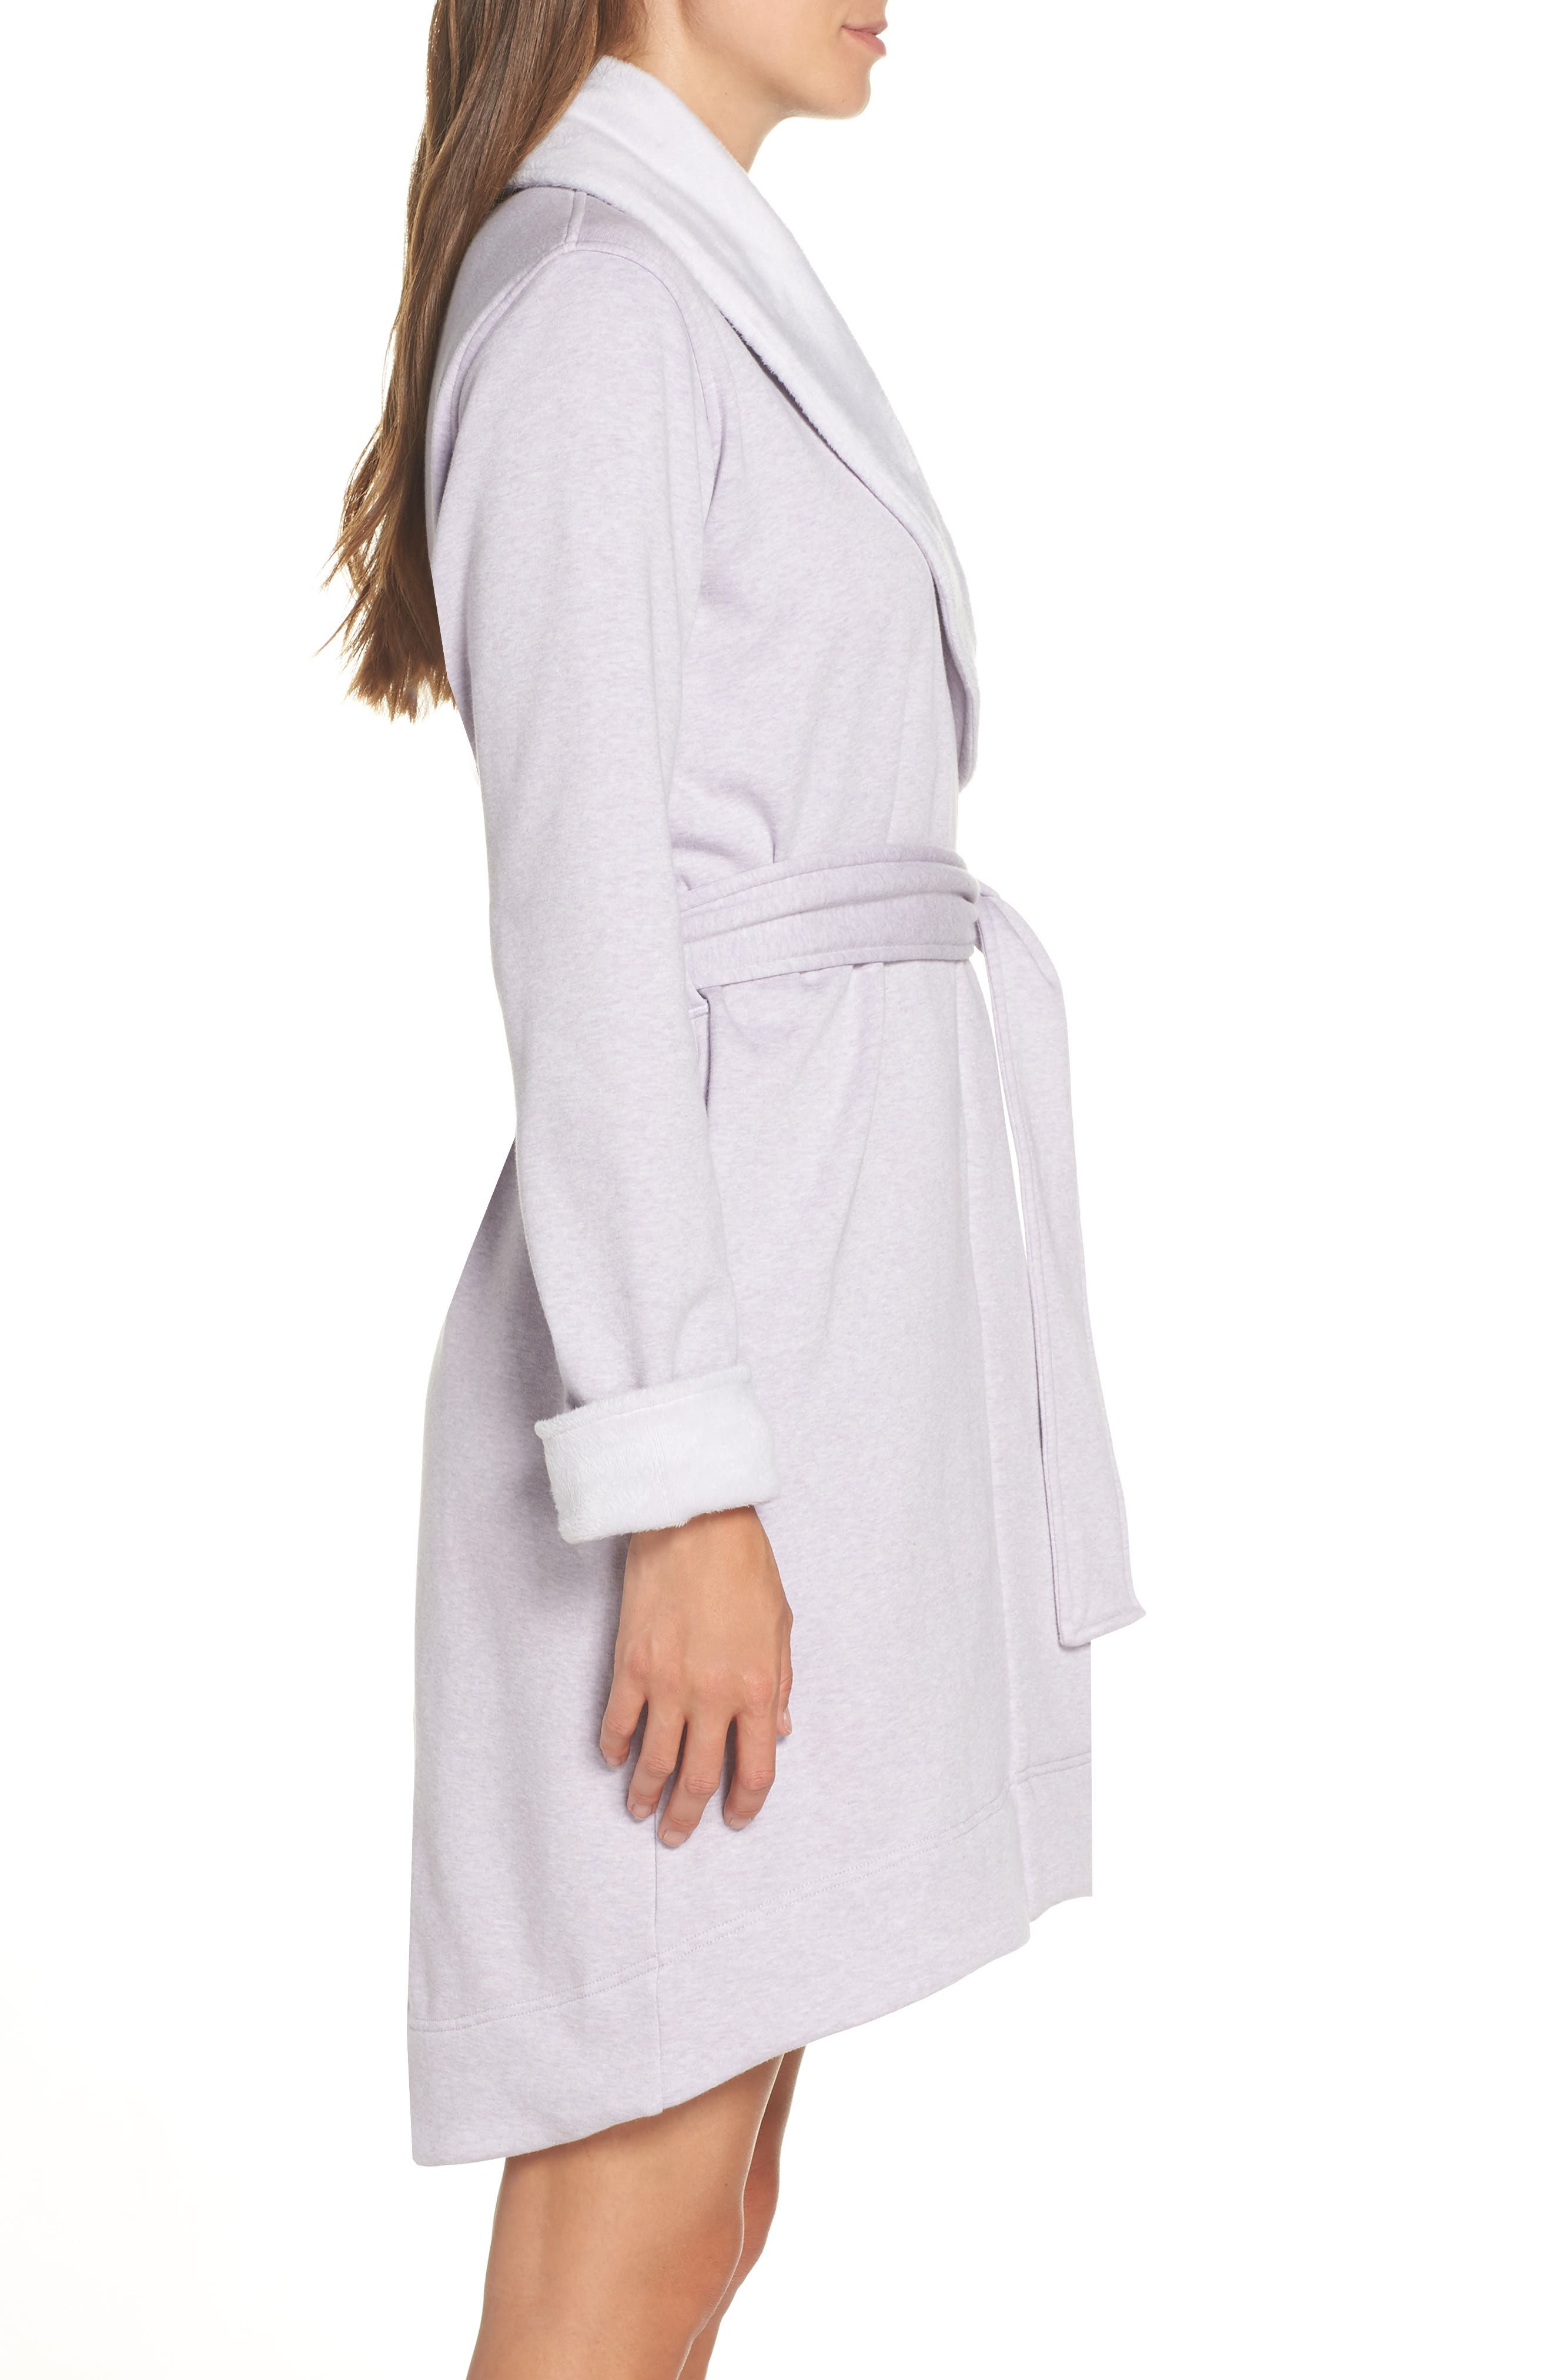 Blanche II Short Robe,                             Alternate thumbnail 19, color,